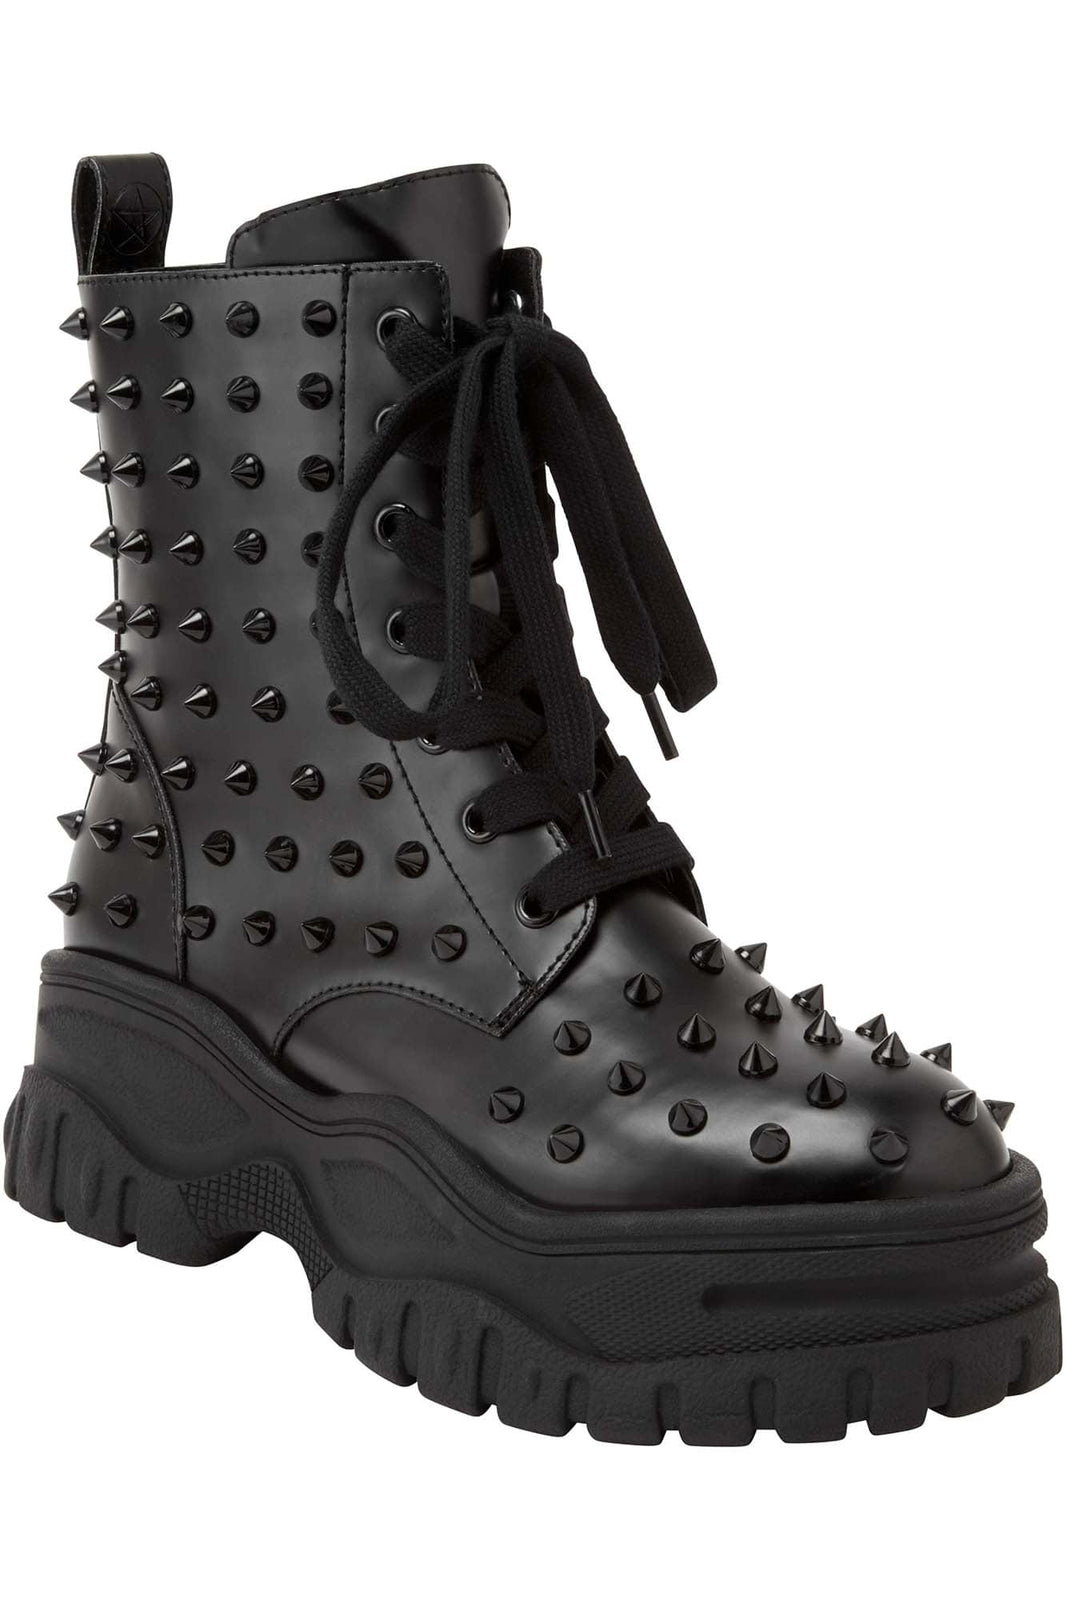 Empire Studded Boots